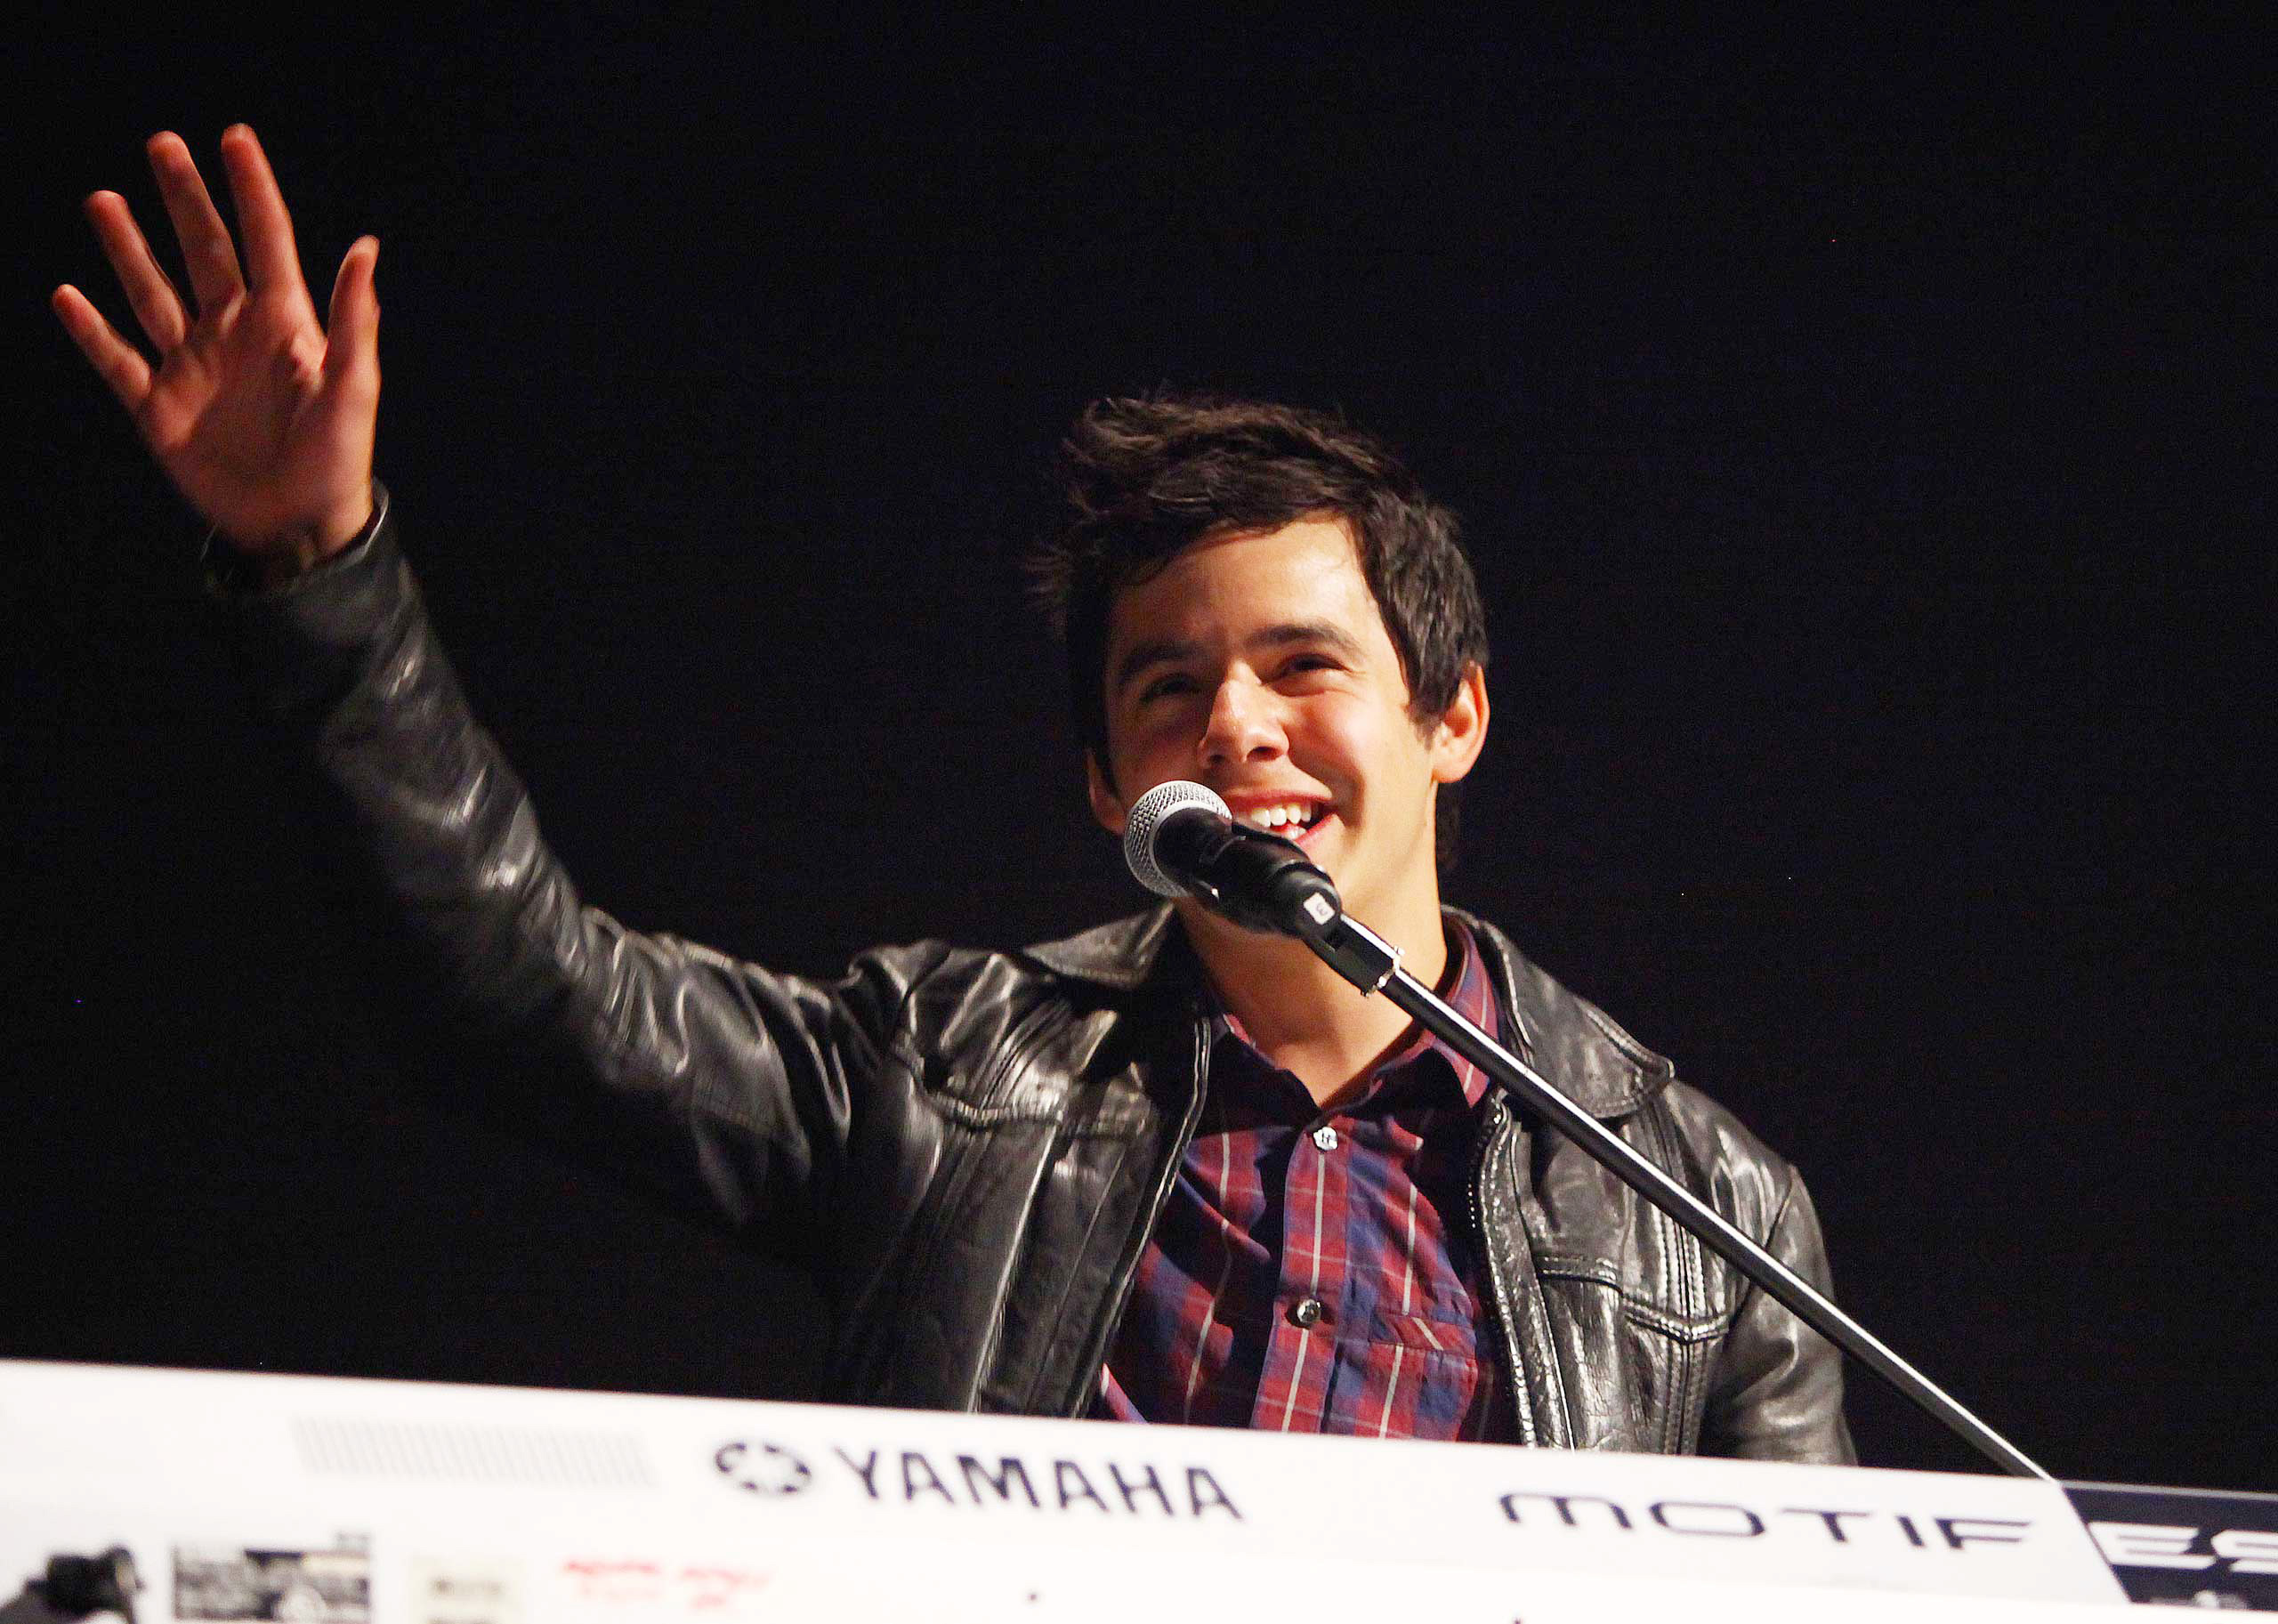 "<b>David Archuleta</b>, season 7 runner-up, performs at the KIIS FM's 10th Annual ""American Idol"" Finale Viewing Party at Regal 14 at LA Live Downtown in Los Angeles on May 25, 2011."